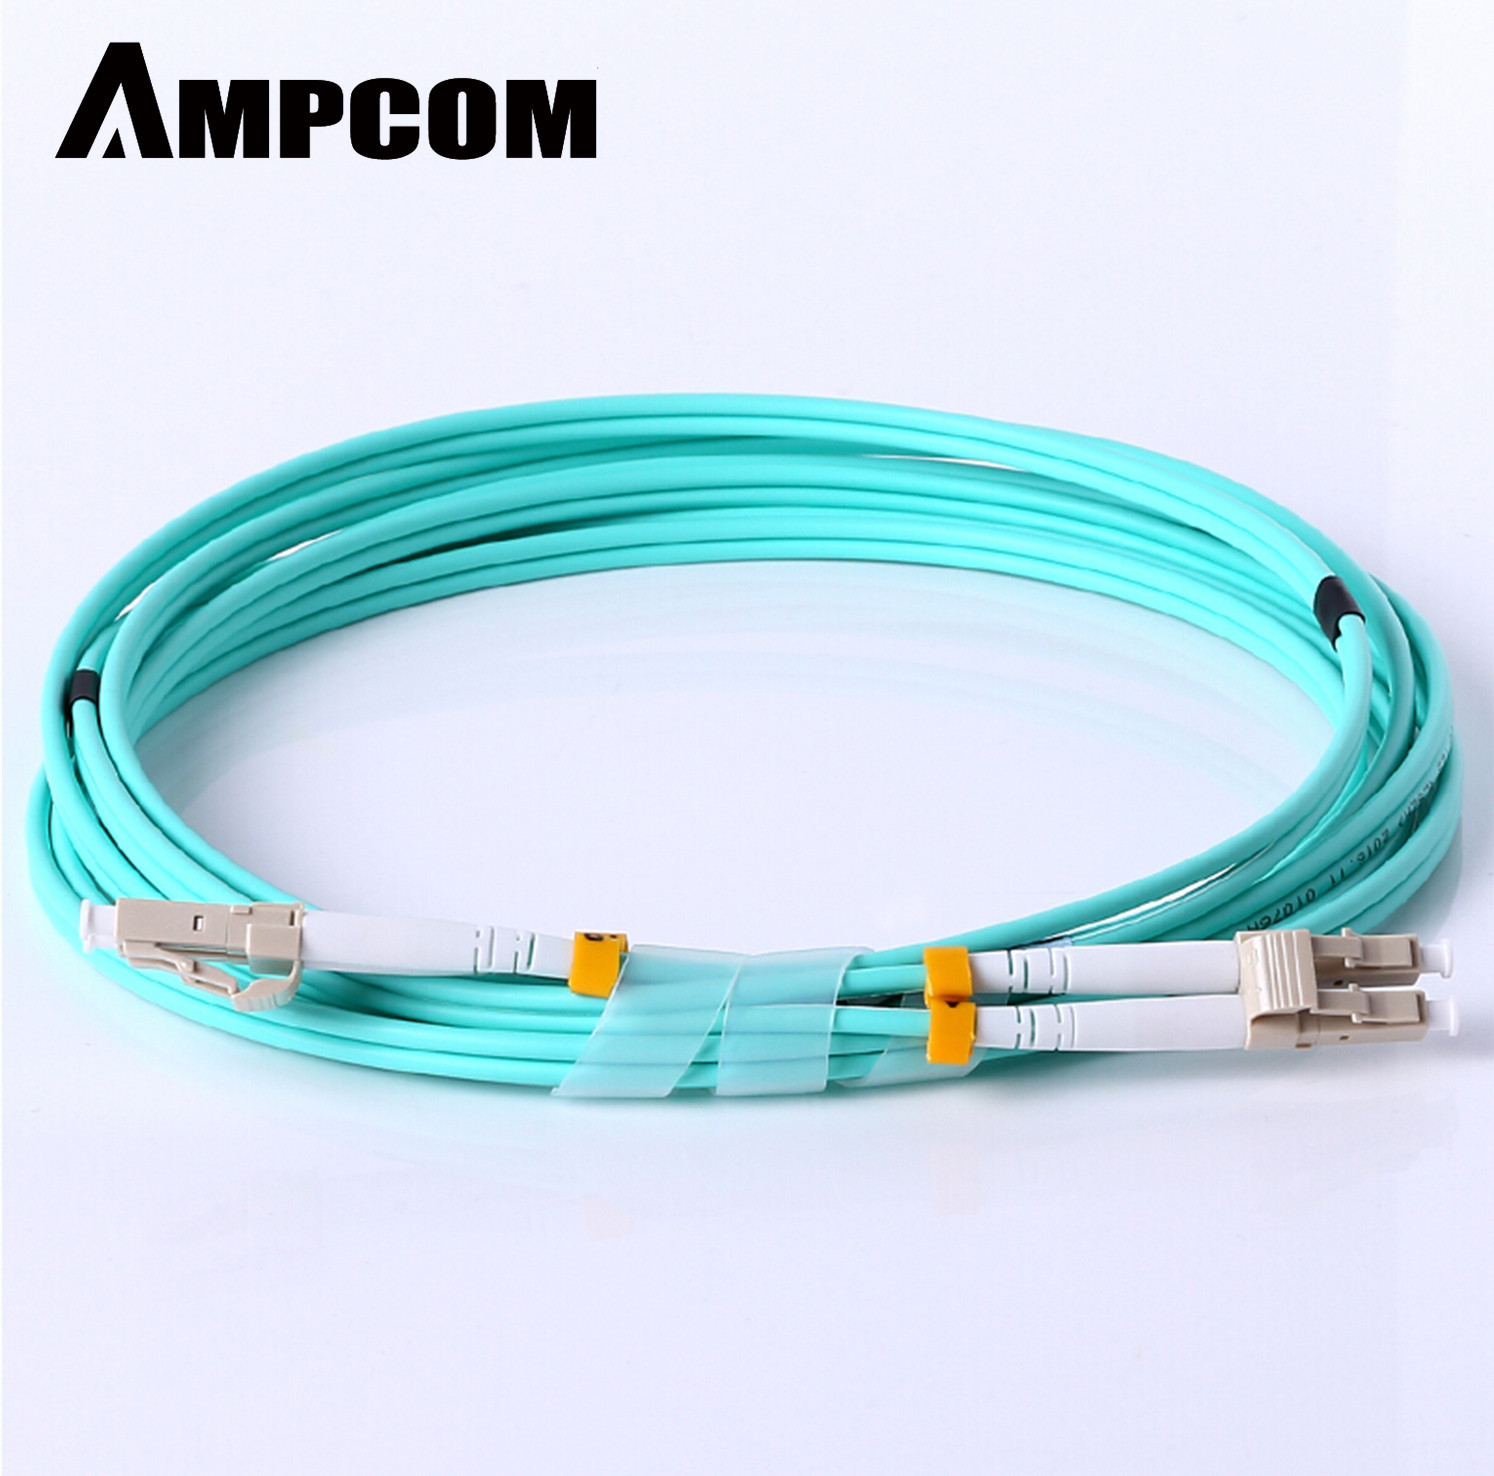 Fiber Patch Cable, AMPCOM 10G Gigabit Fiber Optic Cables With LC To LC Multimode OM3 Duplex 50/125  LSZH